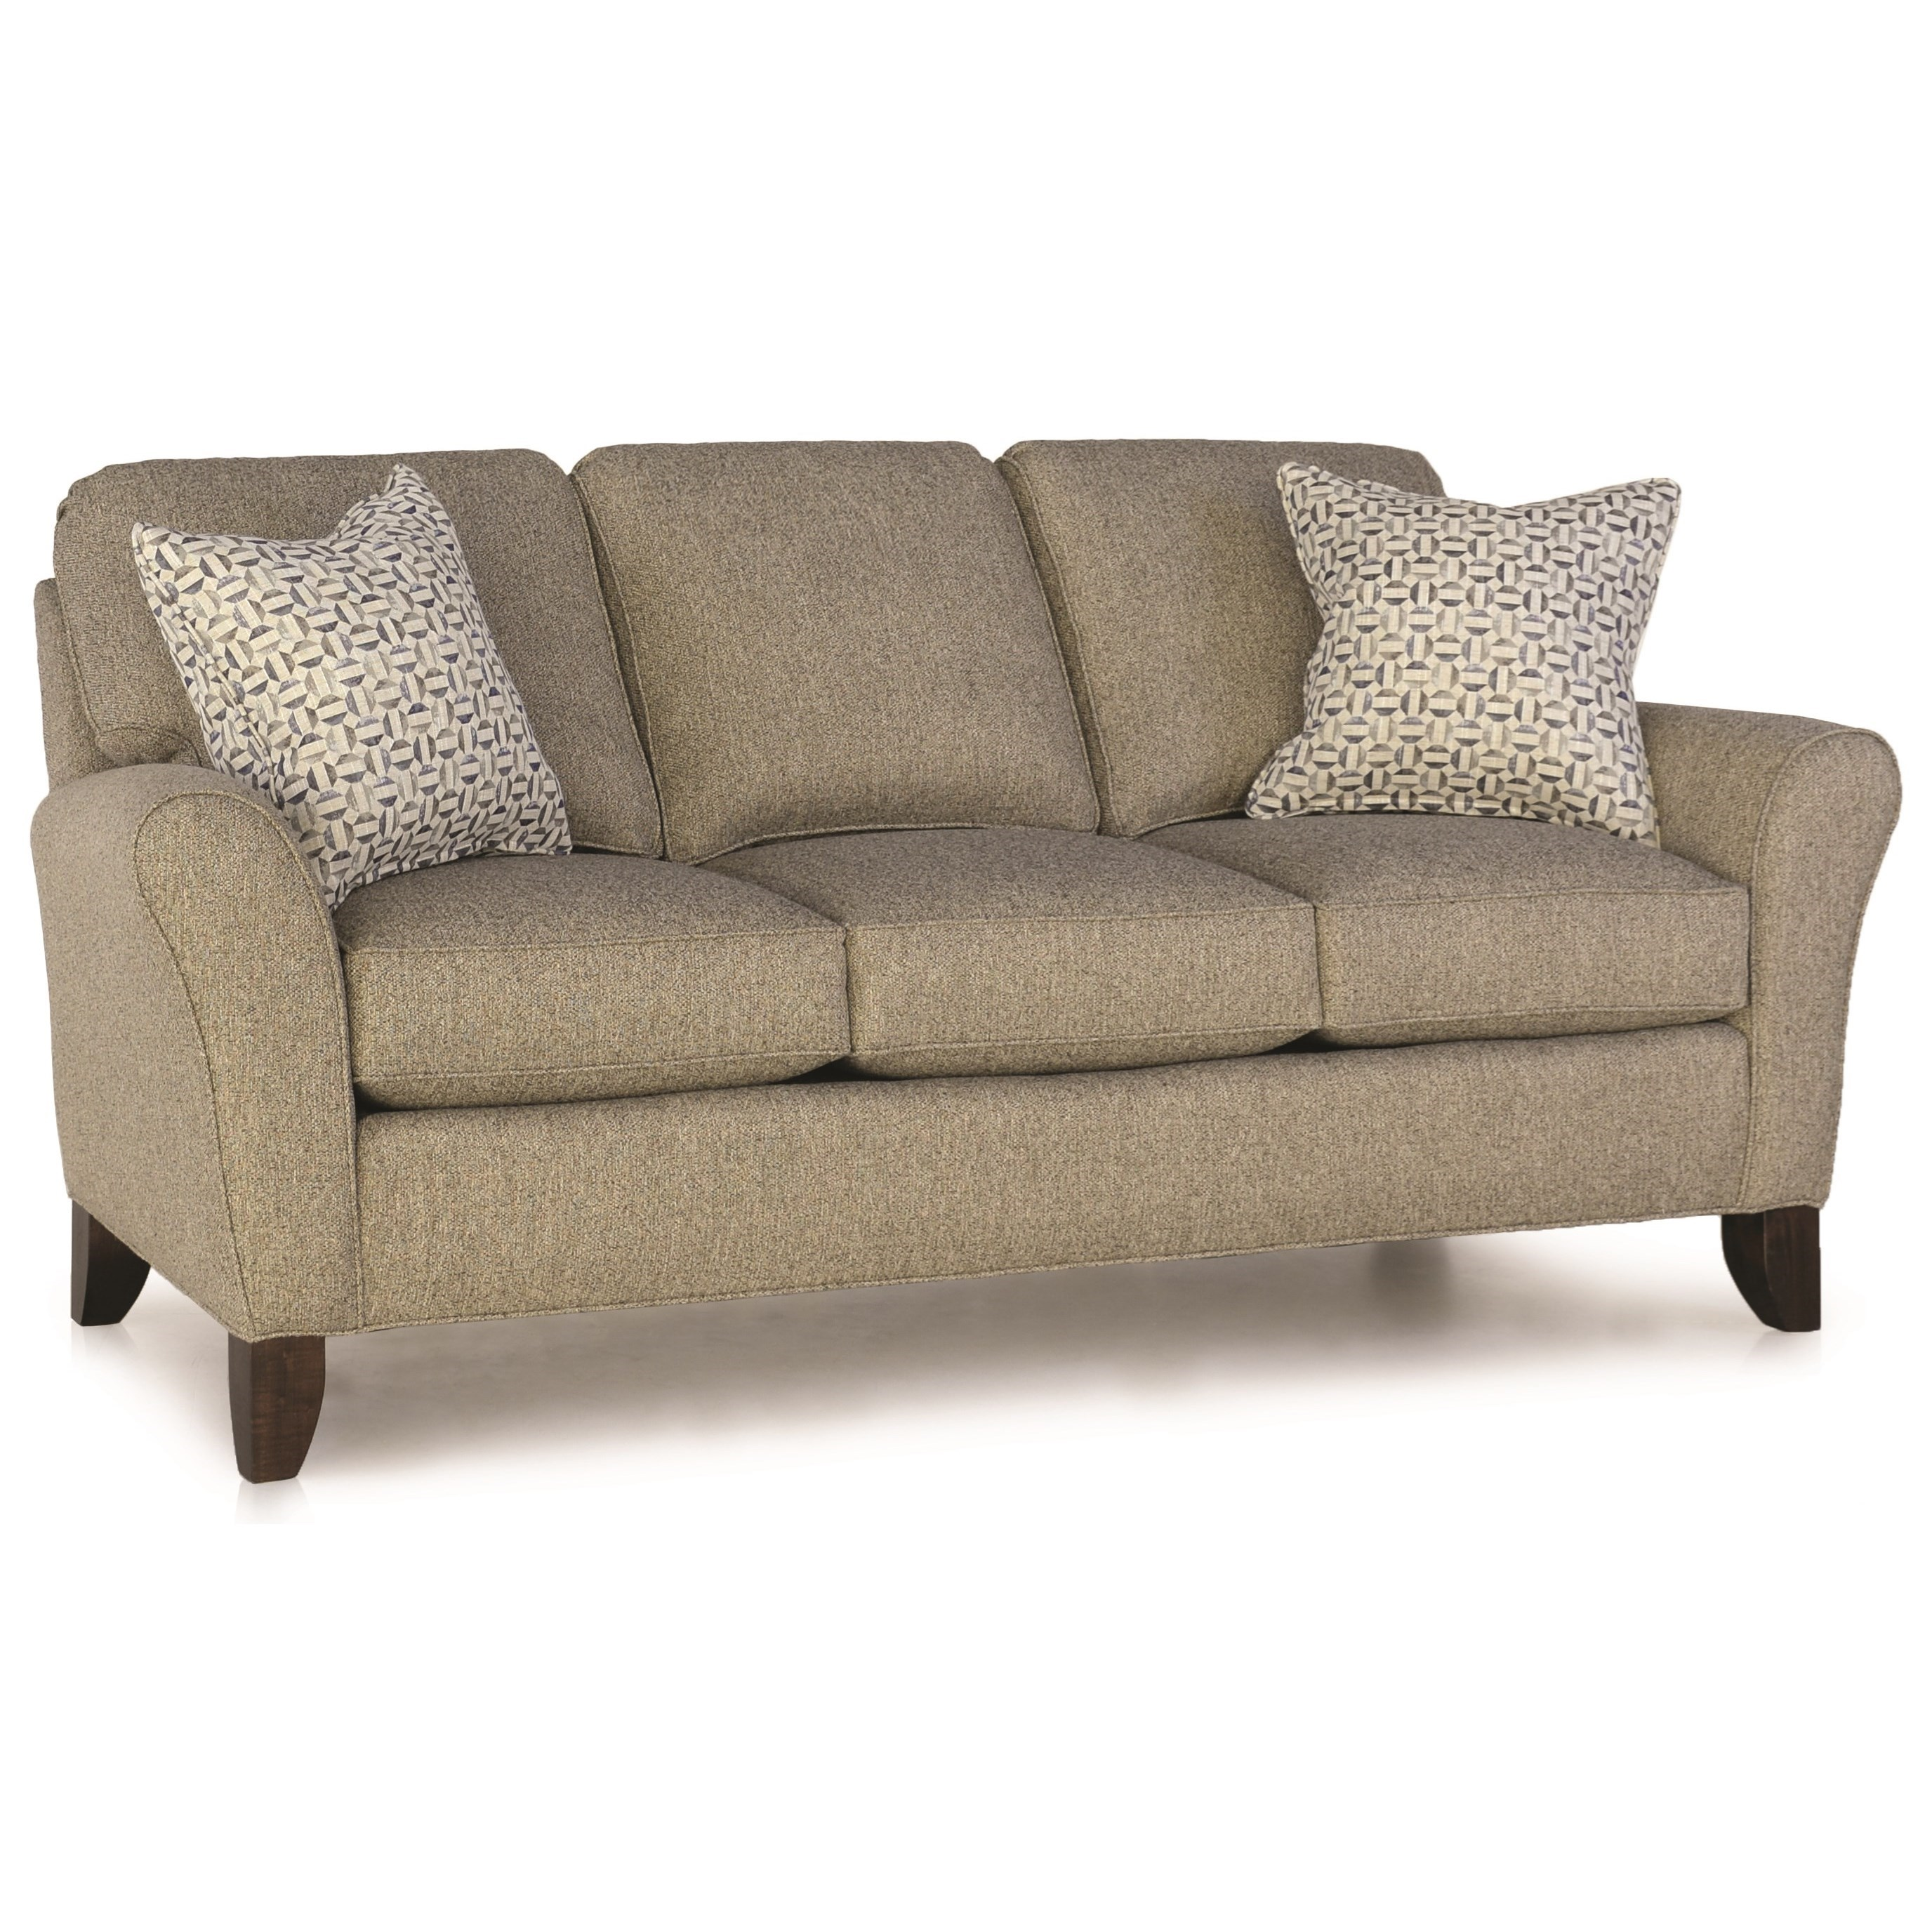 344 Upholstered Sofa by Smith Brothers at Rooms for Less